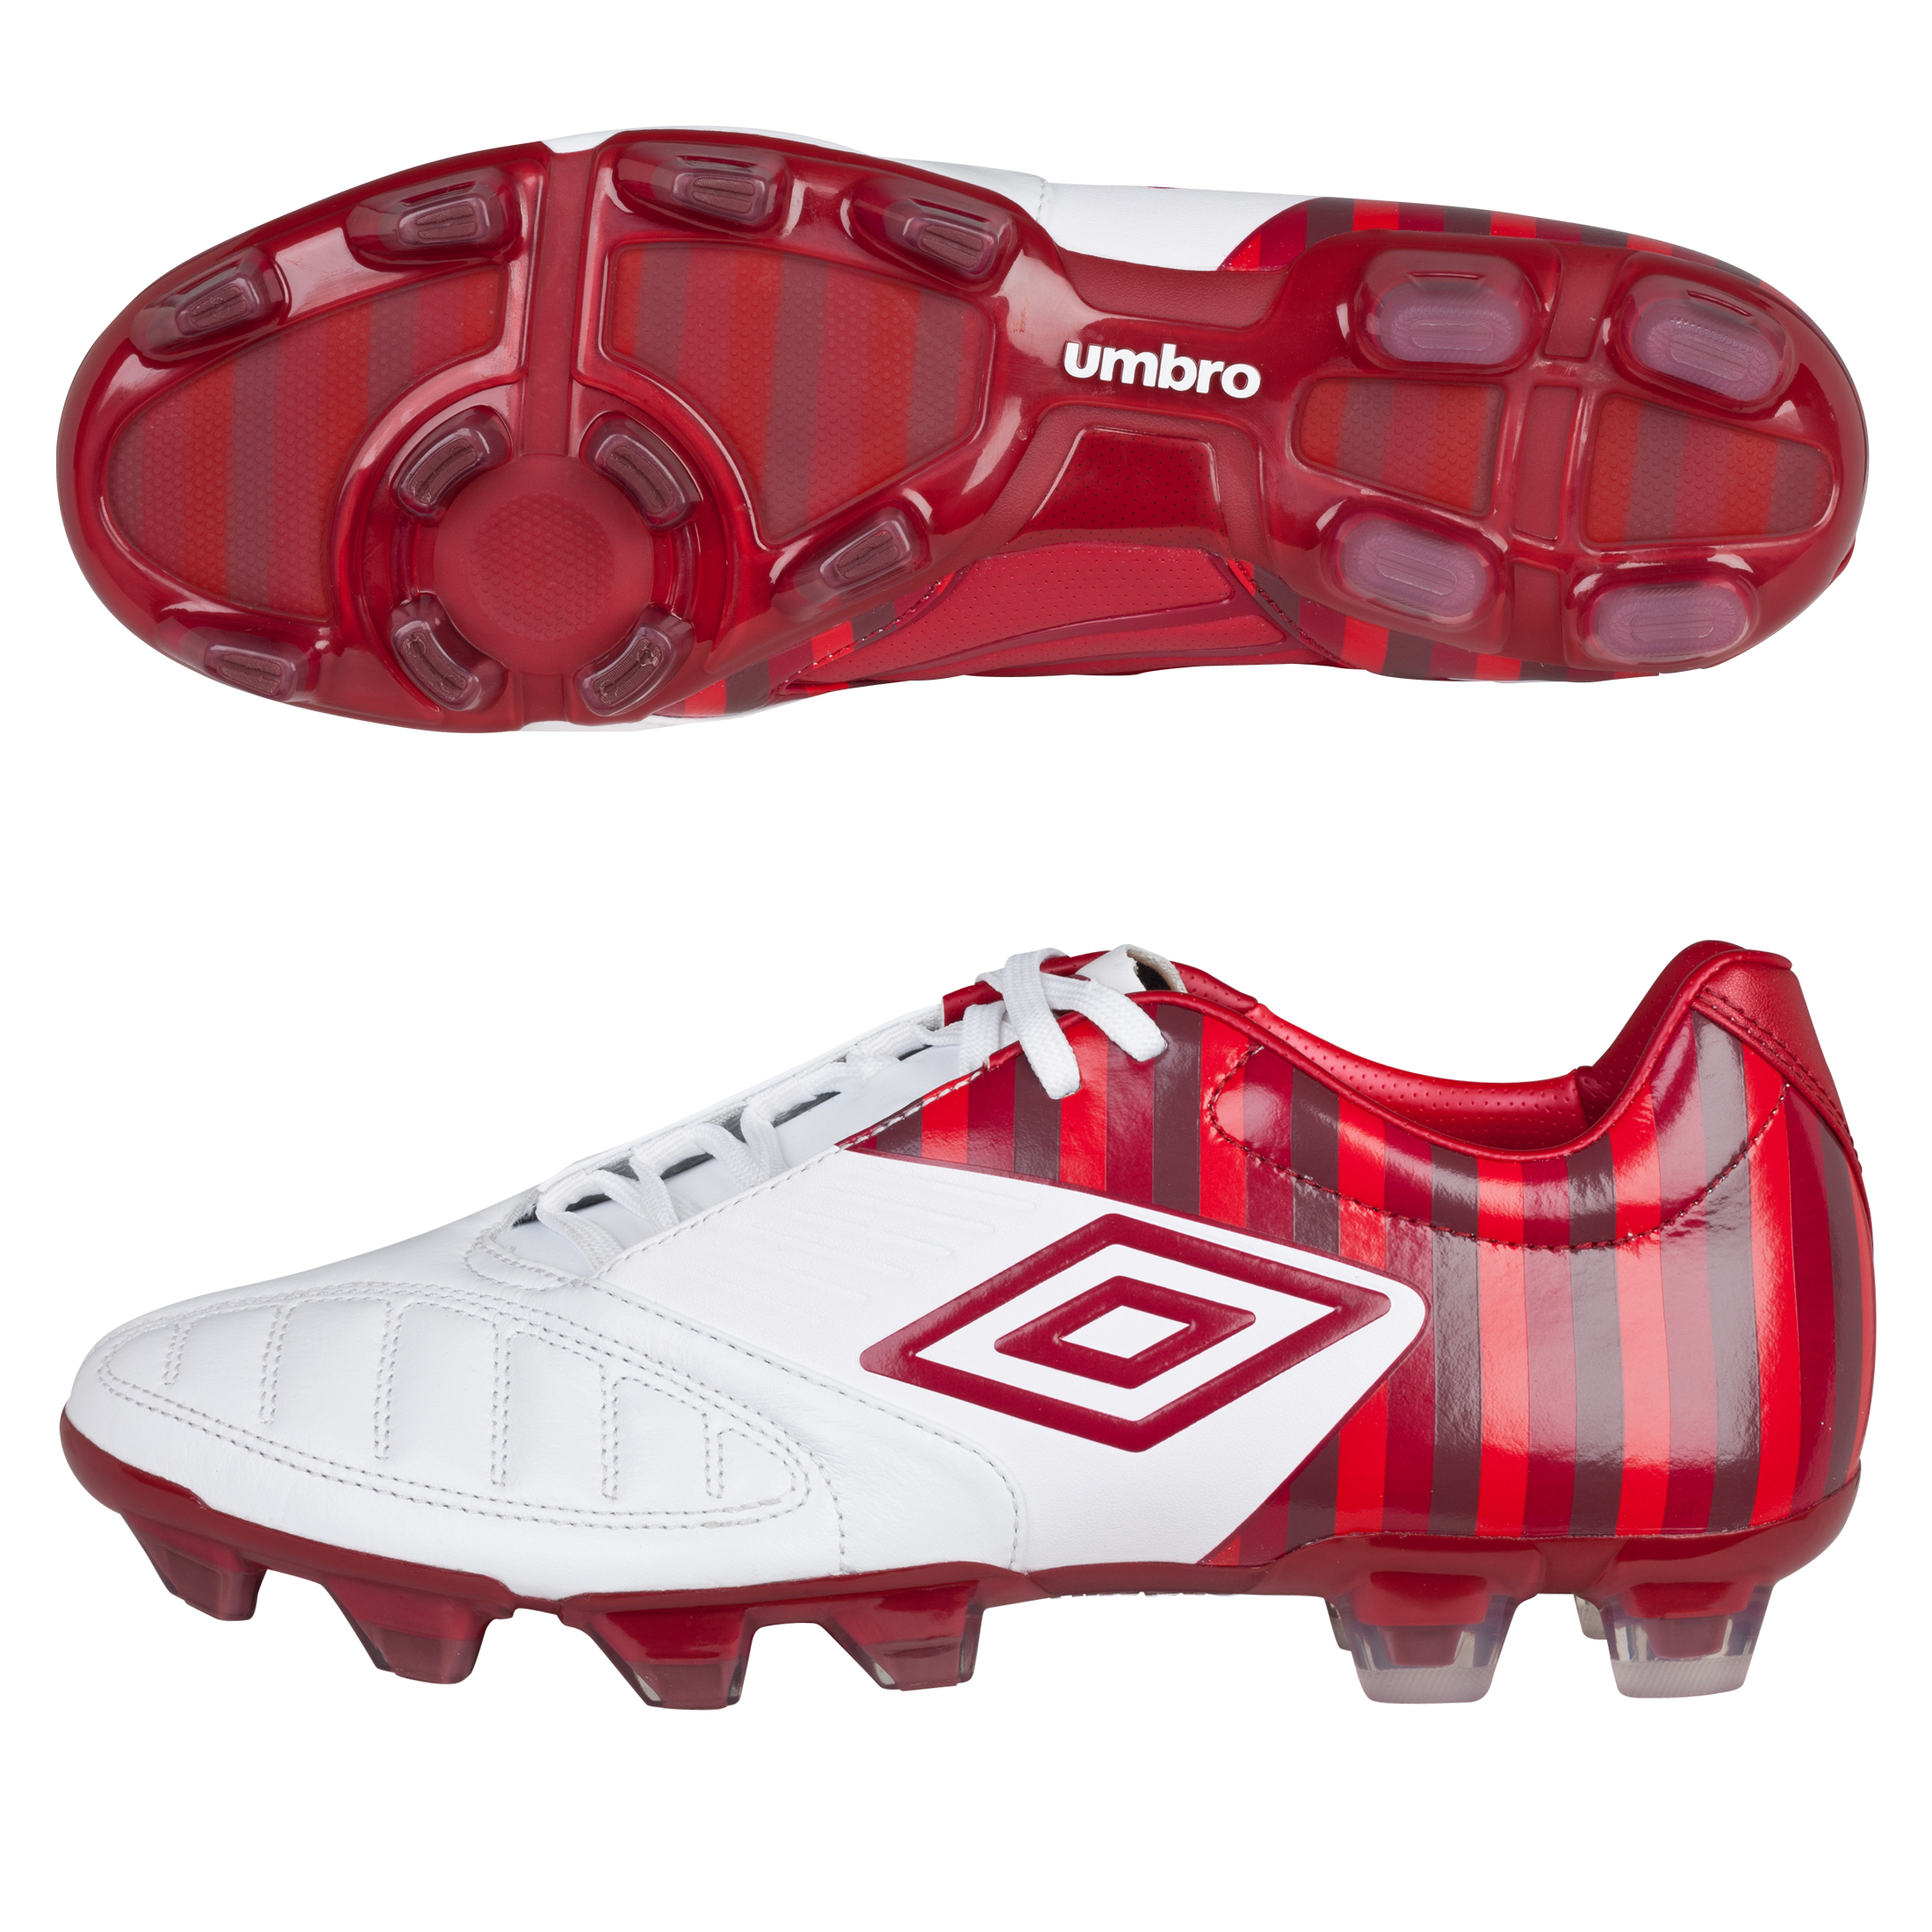 Geometra Pro 2012 FG White / Vermillion / Dark Vermillion / Deep Claret